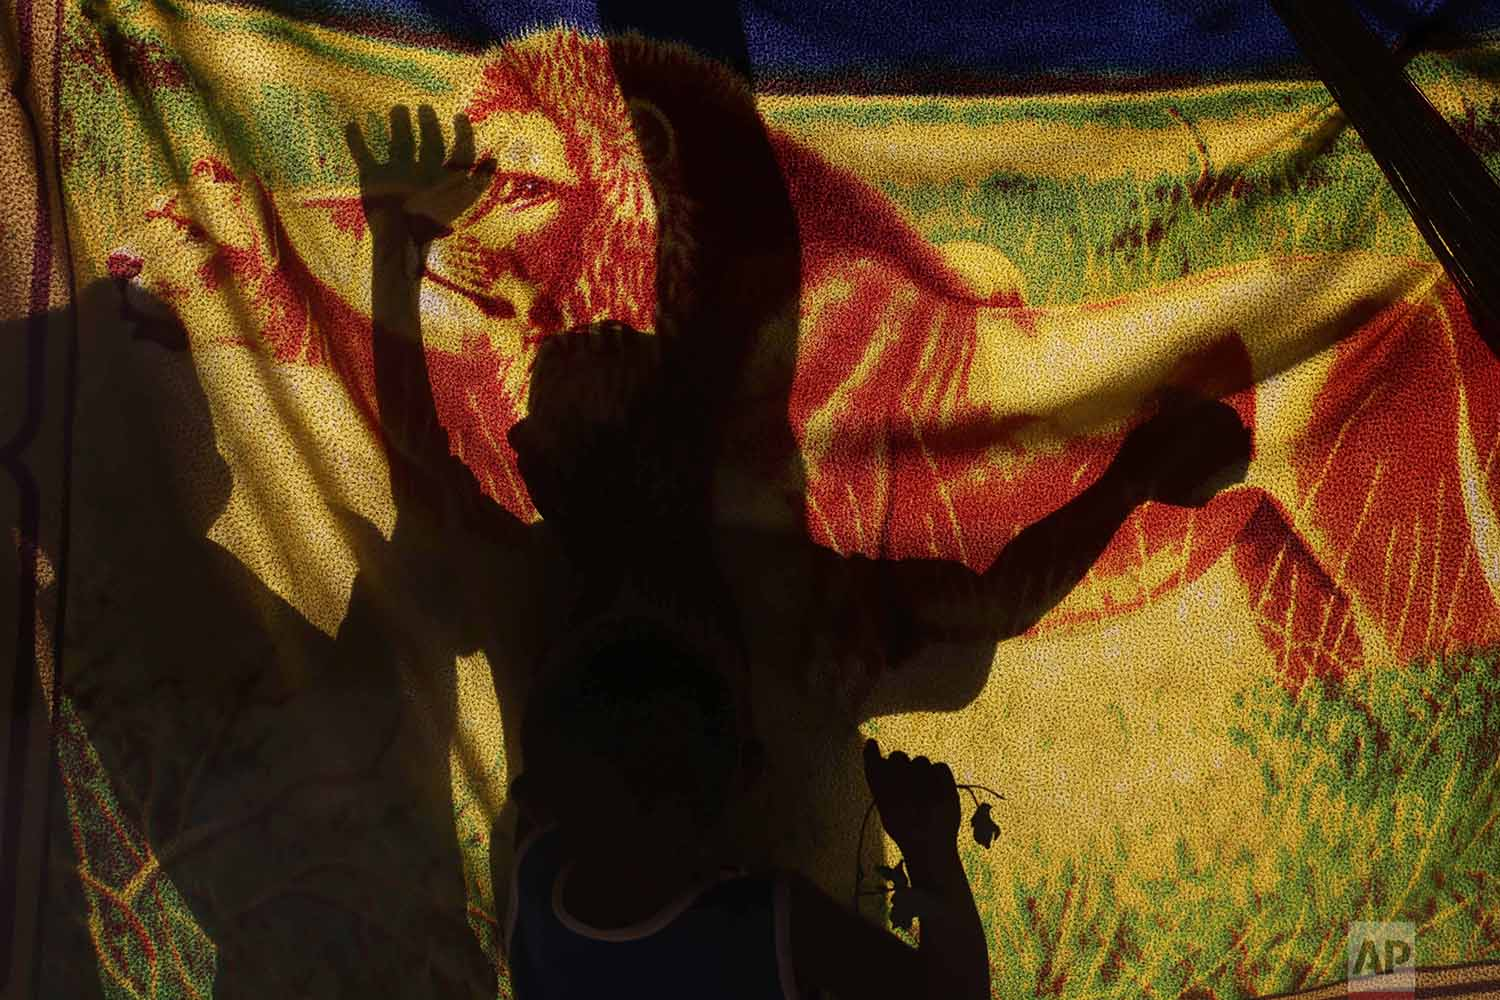 In this March 10, 2018 photo, the shadows of Warao children are cast on a blanket serving as a curtain at a shelter in Pacaraima, Brazil. (AP Photo/Eraldo Peres)